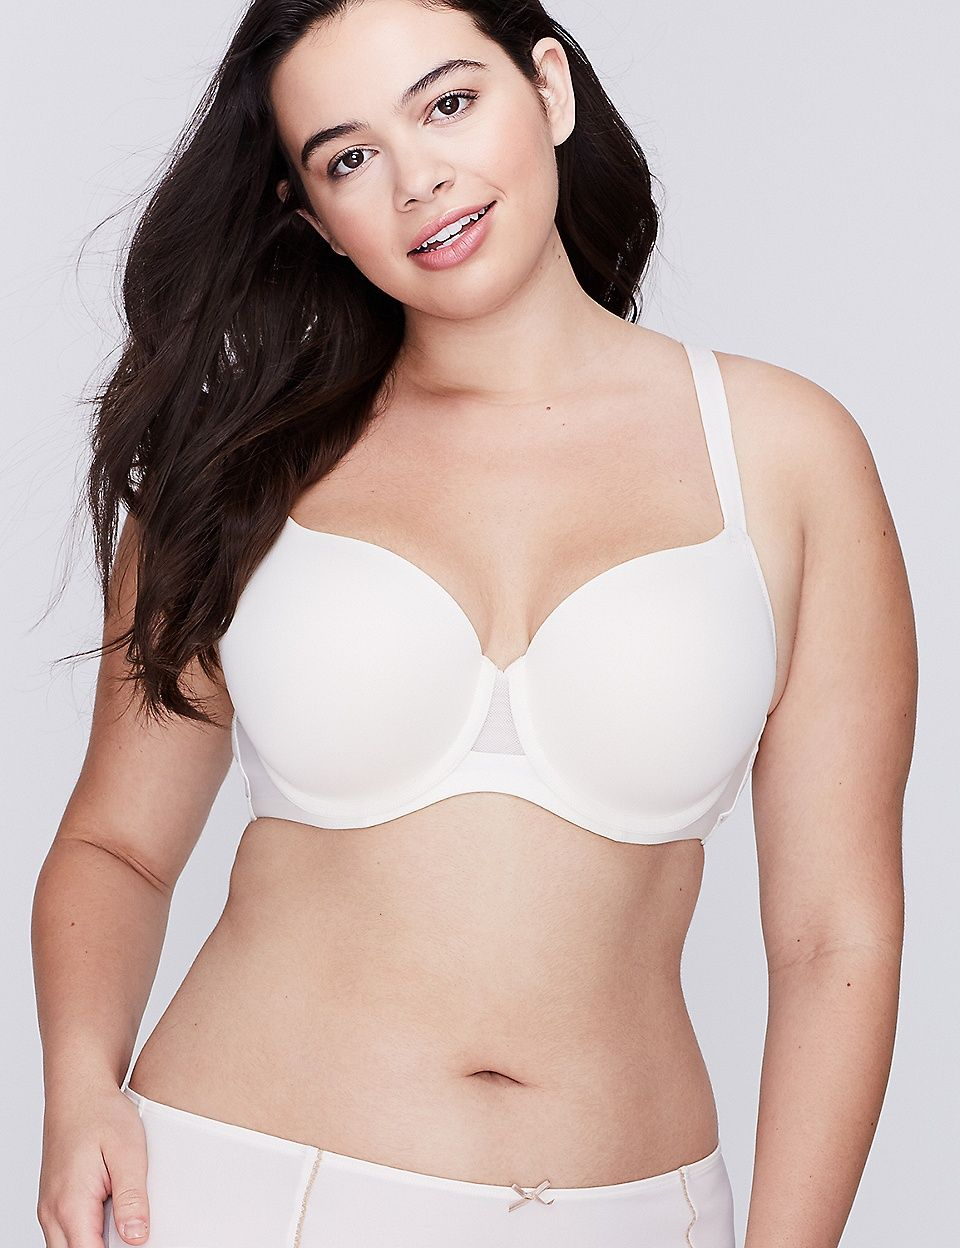 French Full Coverage Cooling Bra Bra Plus Size Bra Plus Size